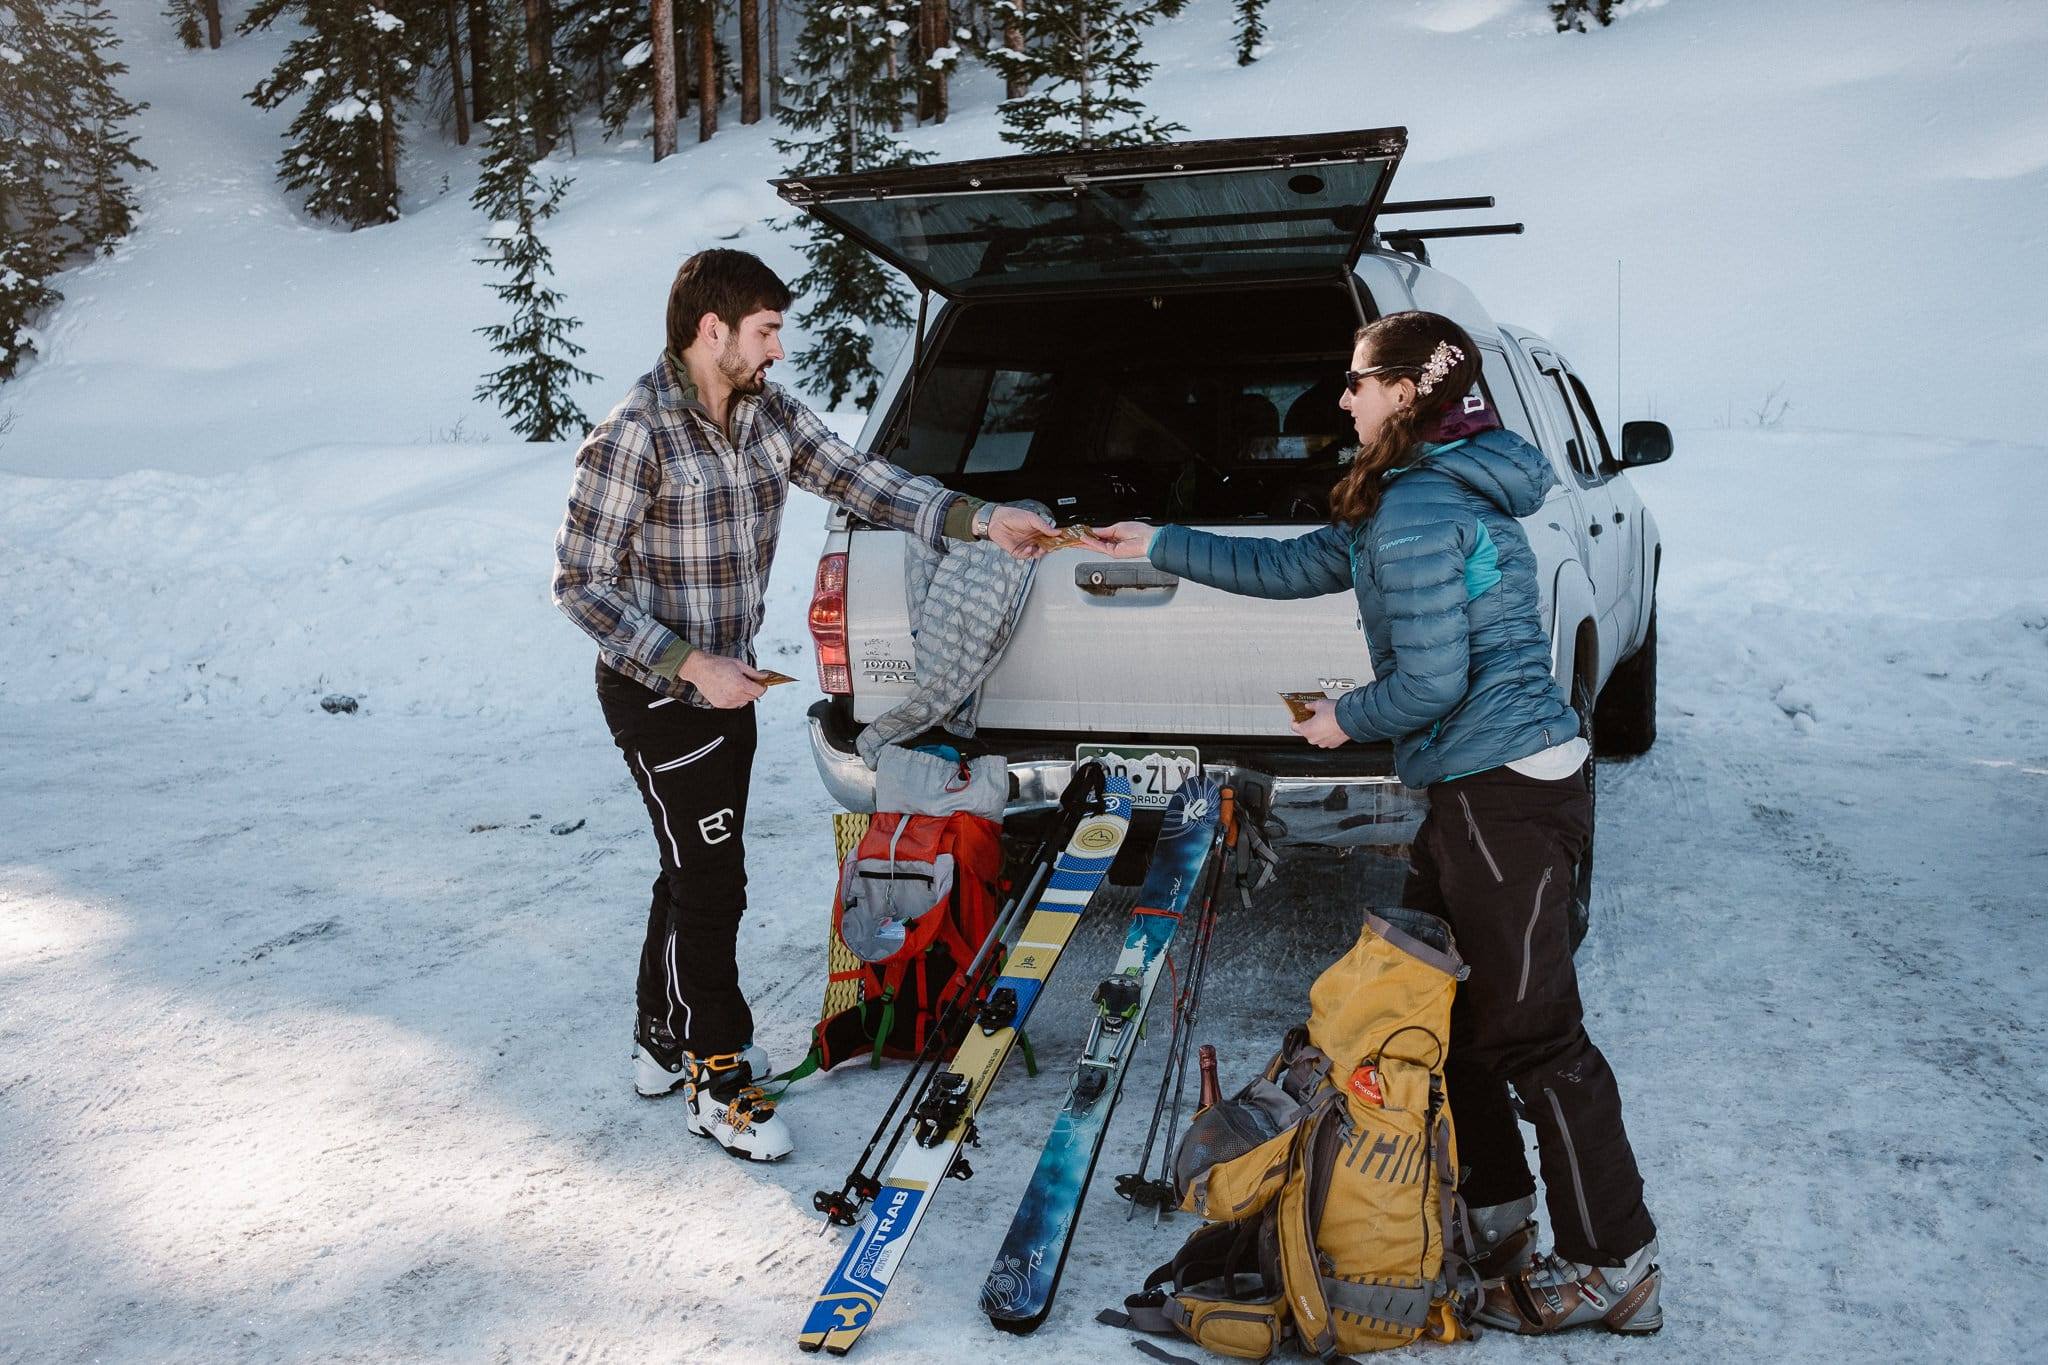 Bride and groom getting backcountry skis out of their car